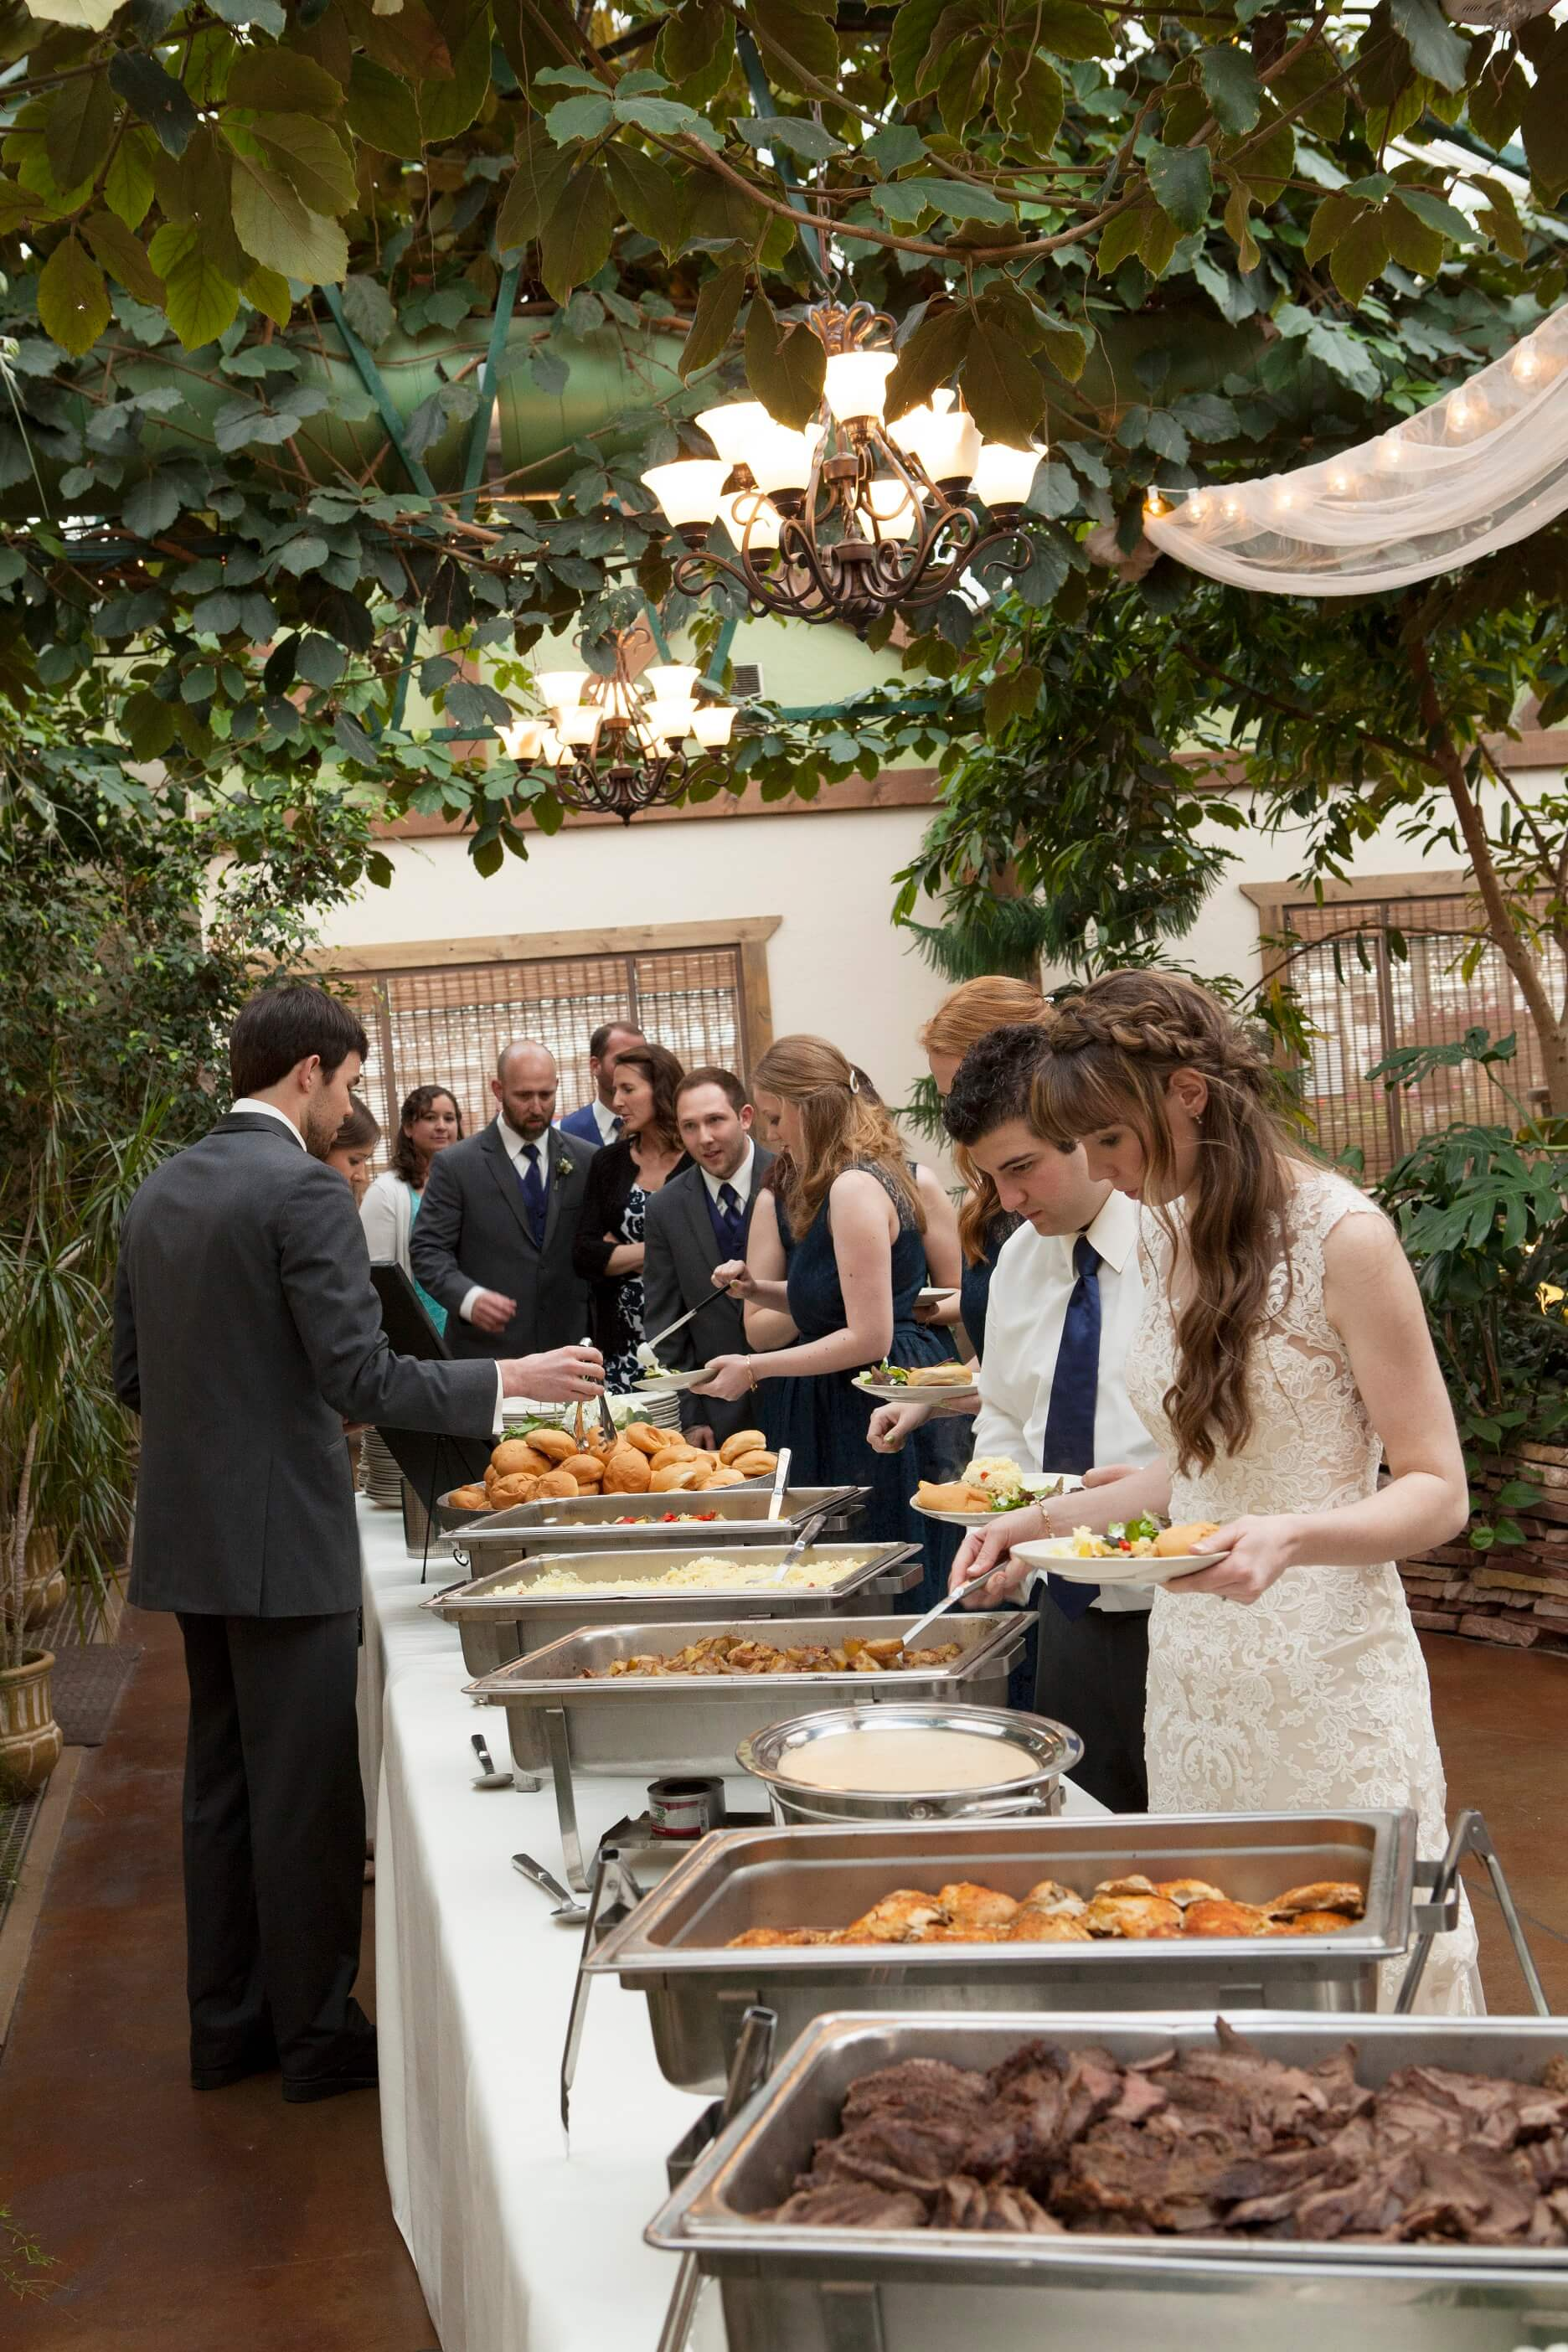 Catering Service for Wedding